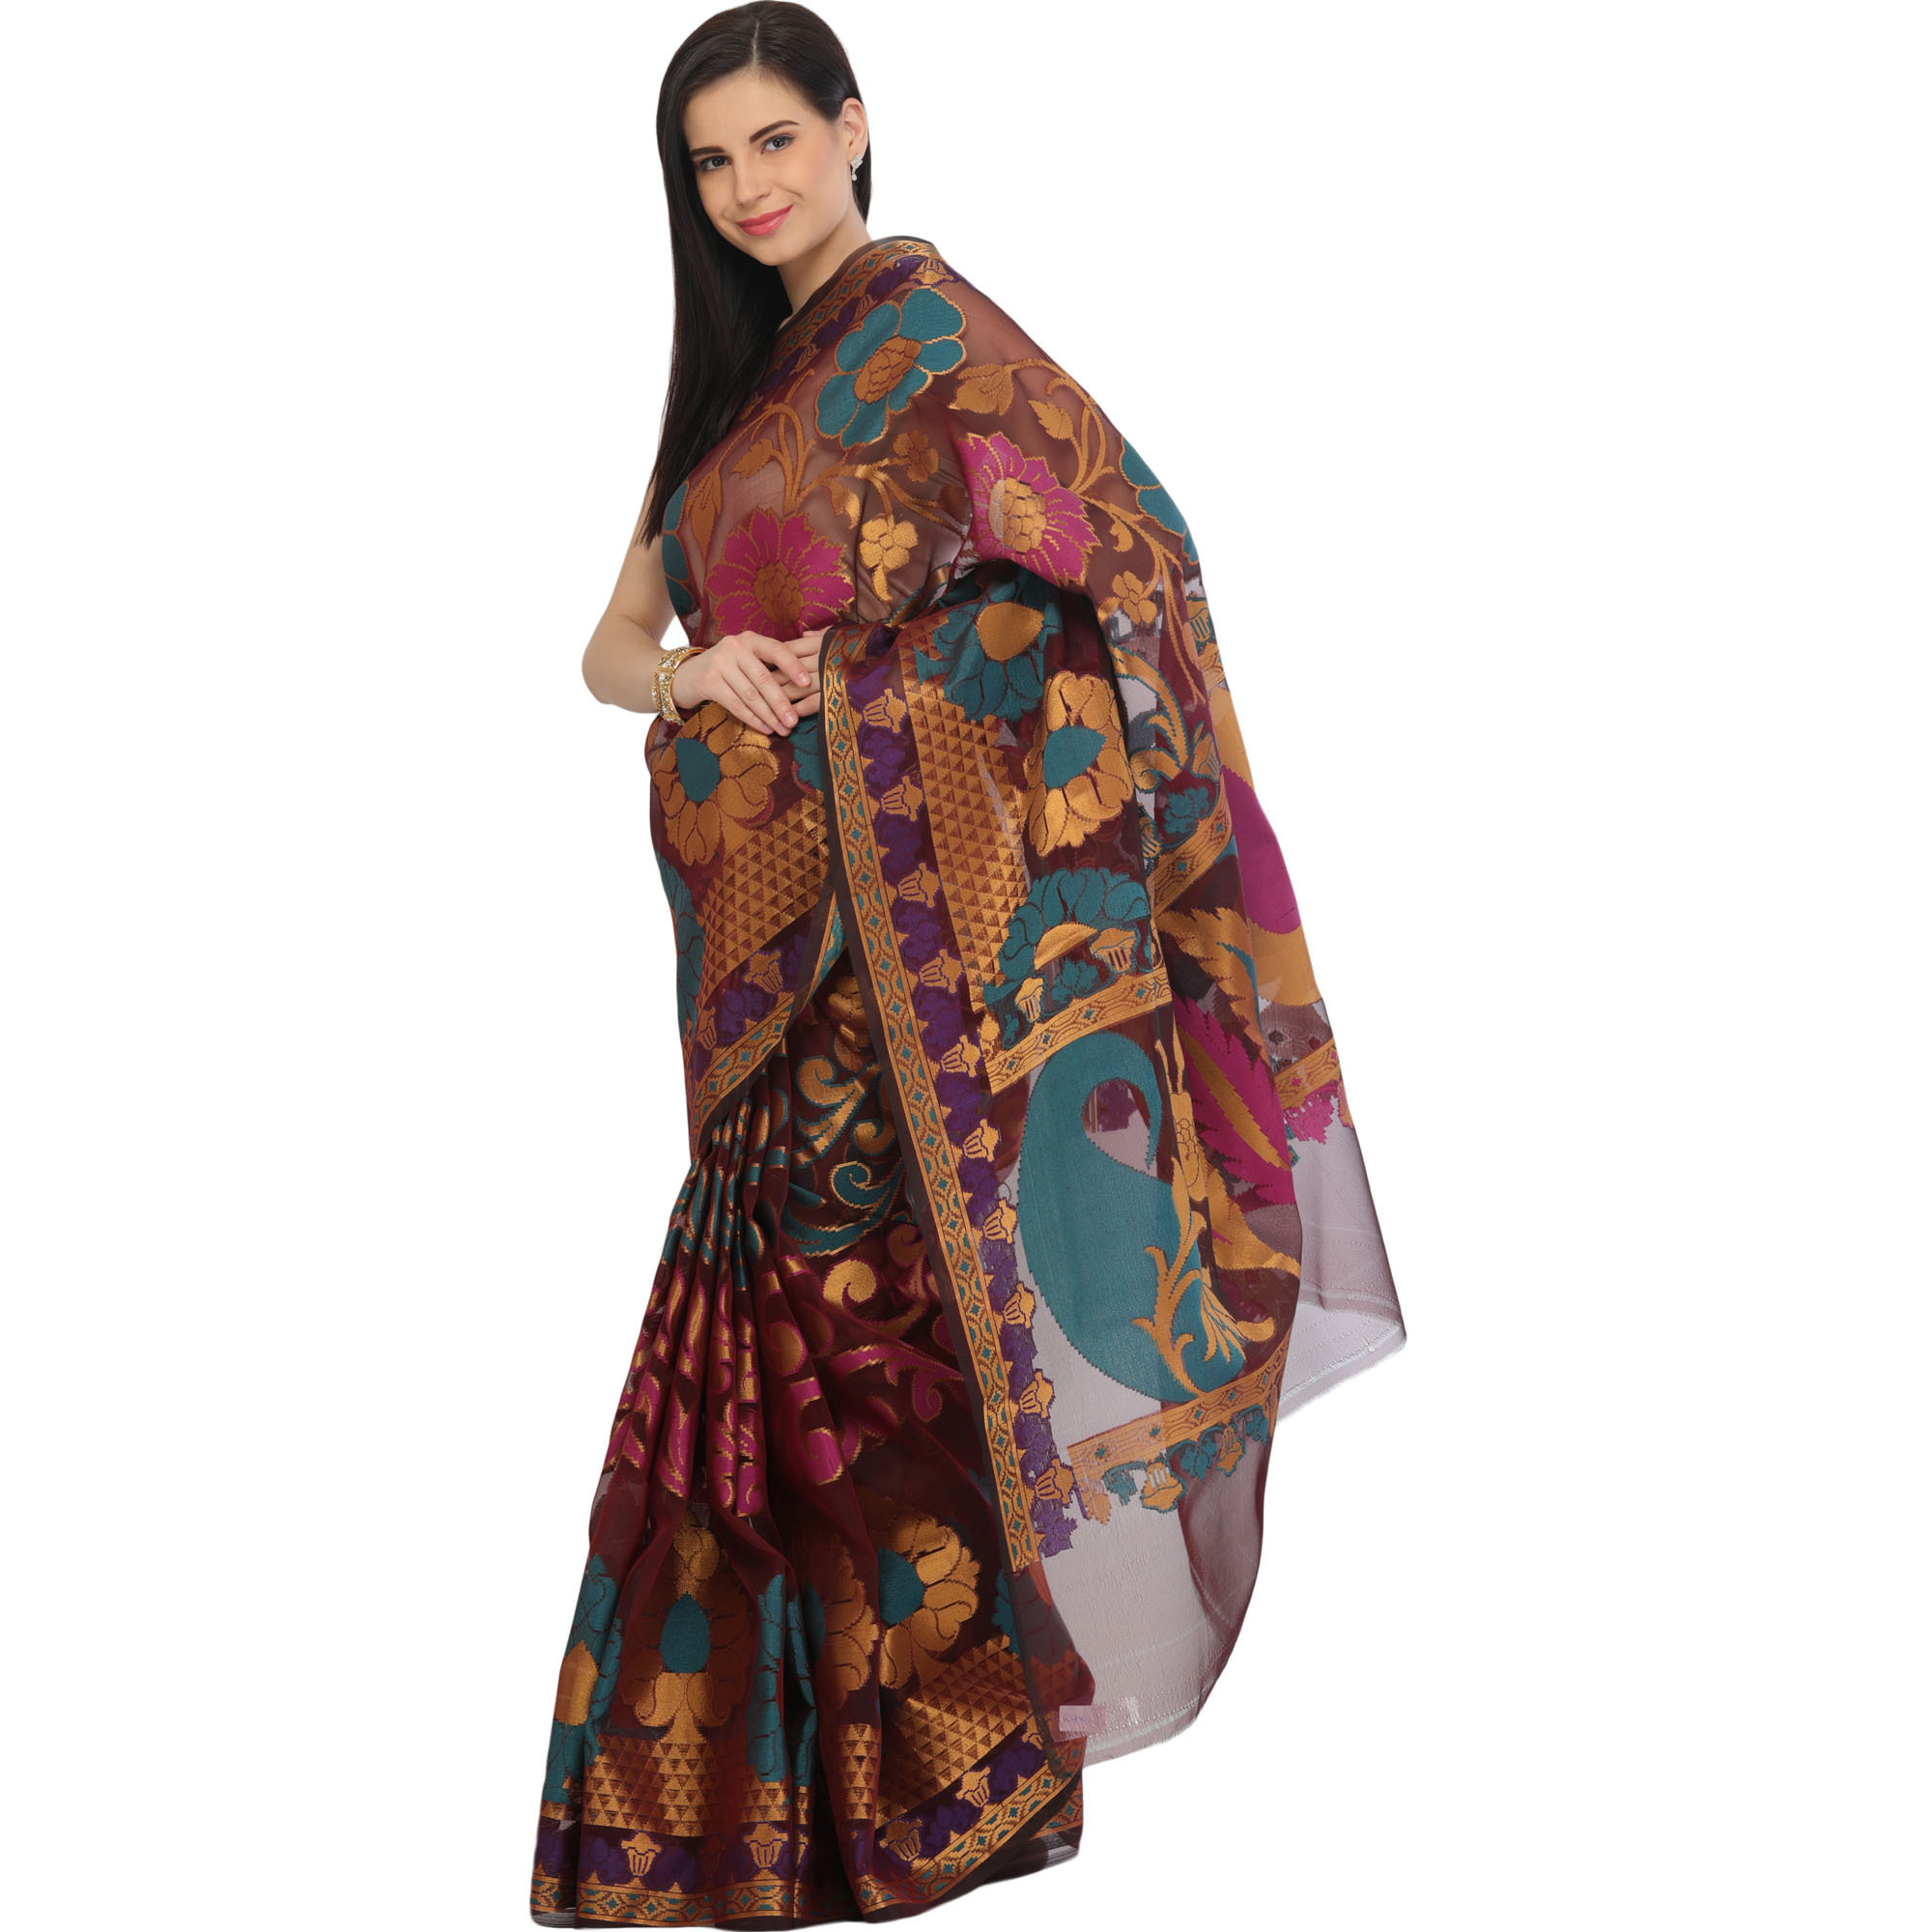 Burgundy Sari from Banaras with Woven Giant Flowers and Paisleys